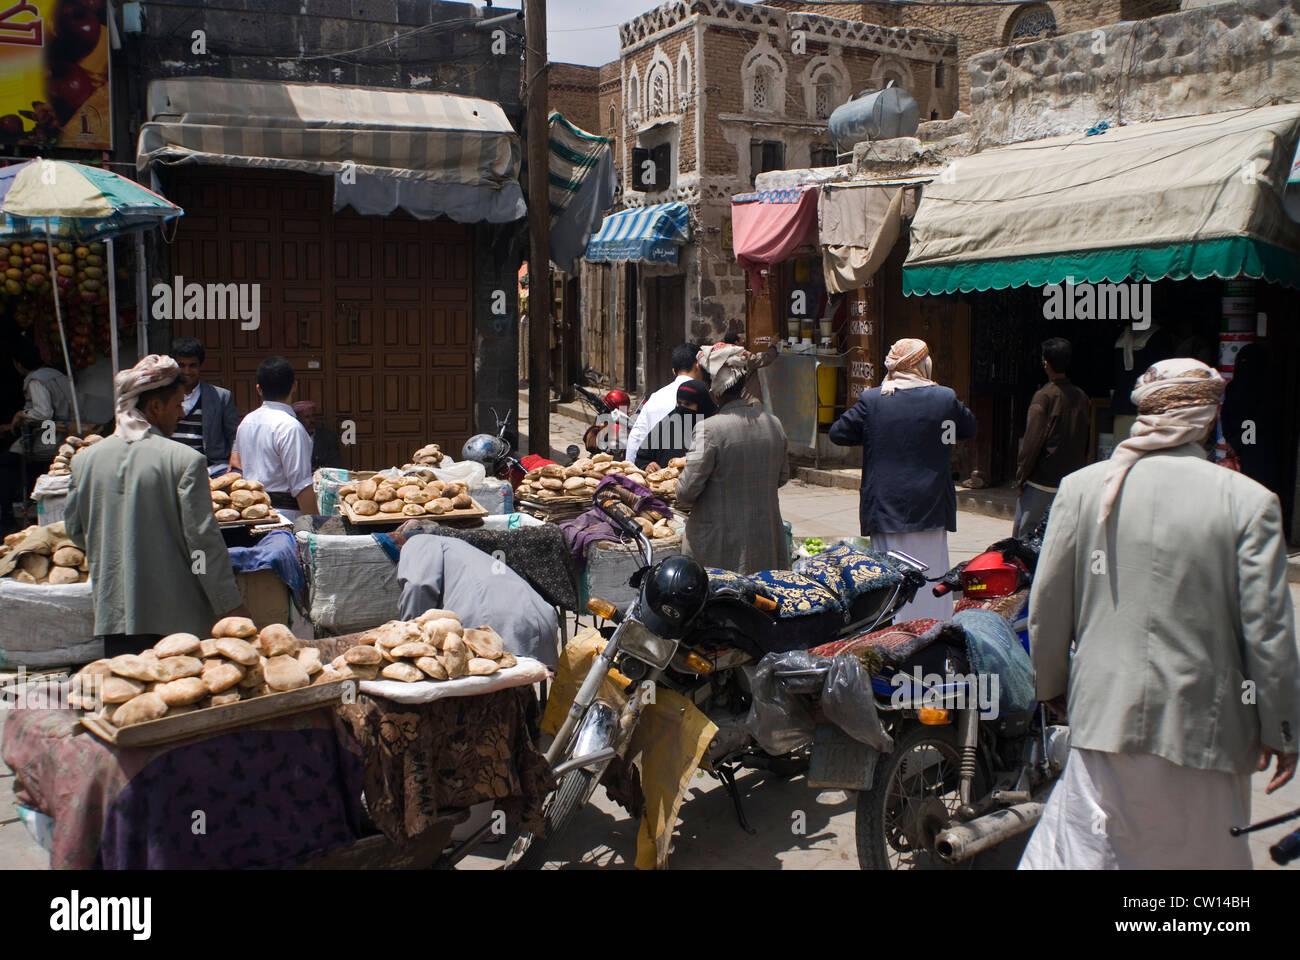 Food stall in the souk of Sana'a, a UNESCO World Heritage Site, Yemen, Western Asia, Arabian Peninsula. - Stock Image